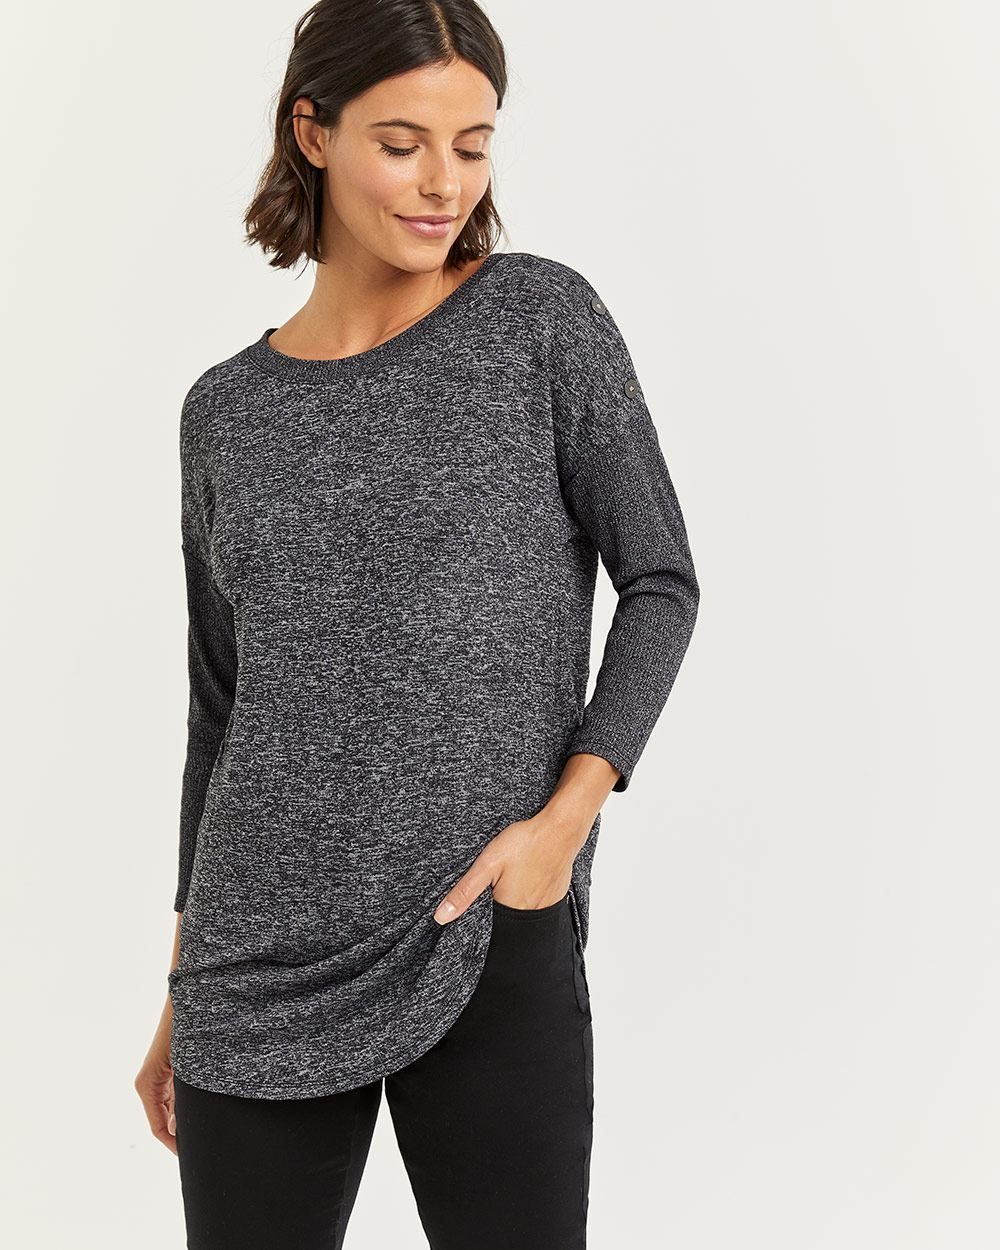 3/4 Sleeve Tee with Buttons at Shoulders - Petite